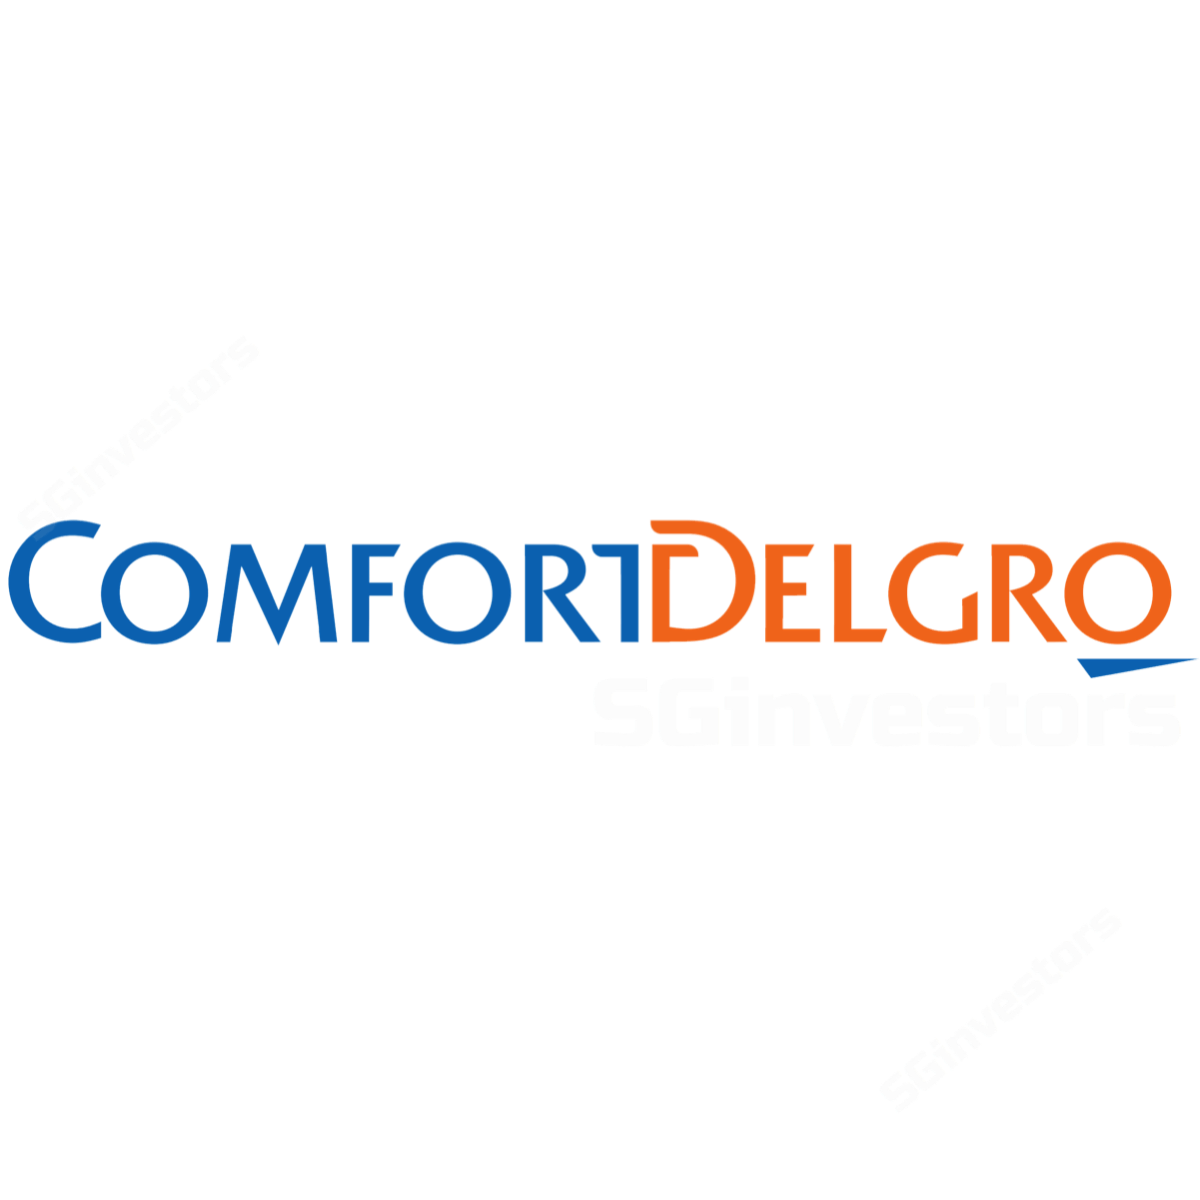 ComfortDelGro Corporation - RHB Invest 2017-11-13: Biting The Bullet; Downgrade To NEUTRAL